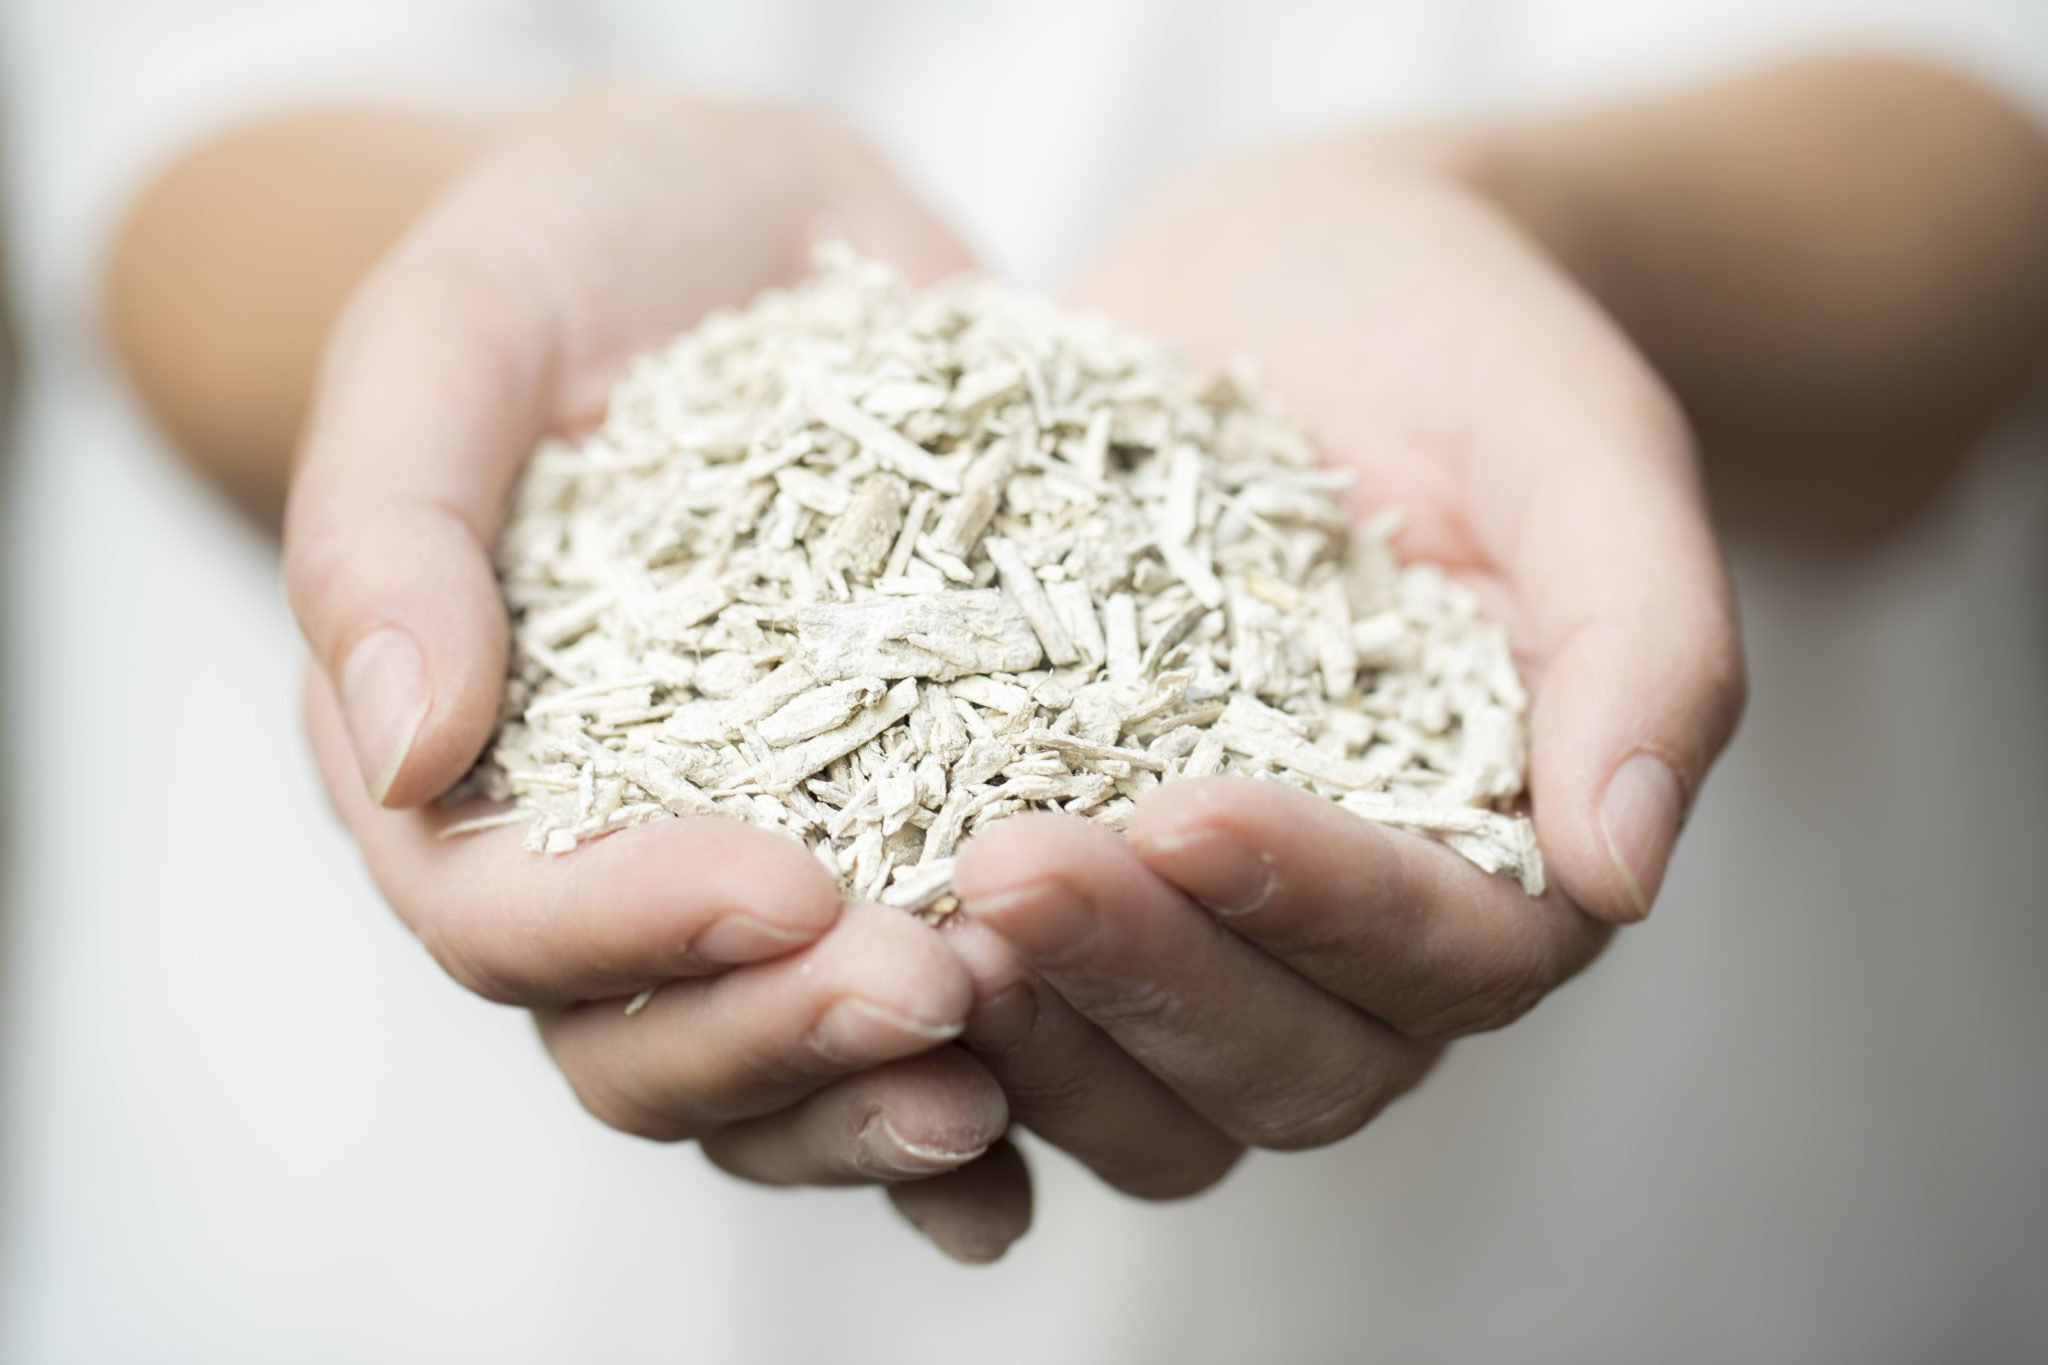 A handful of dried hemp cores, looking a lot like wood chips. Hempcrete building material is one common use for hemp hurds or shivs, the woody core of the plant. Someday, they could be used in hemp supercapacitors too.